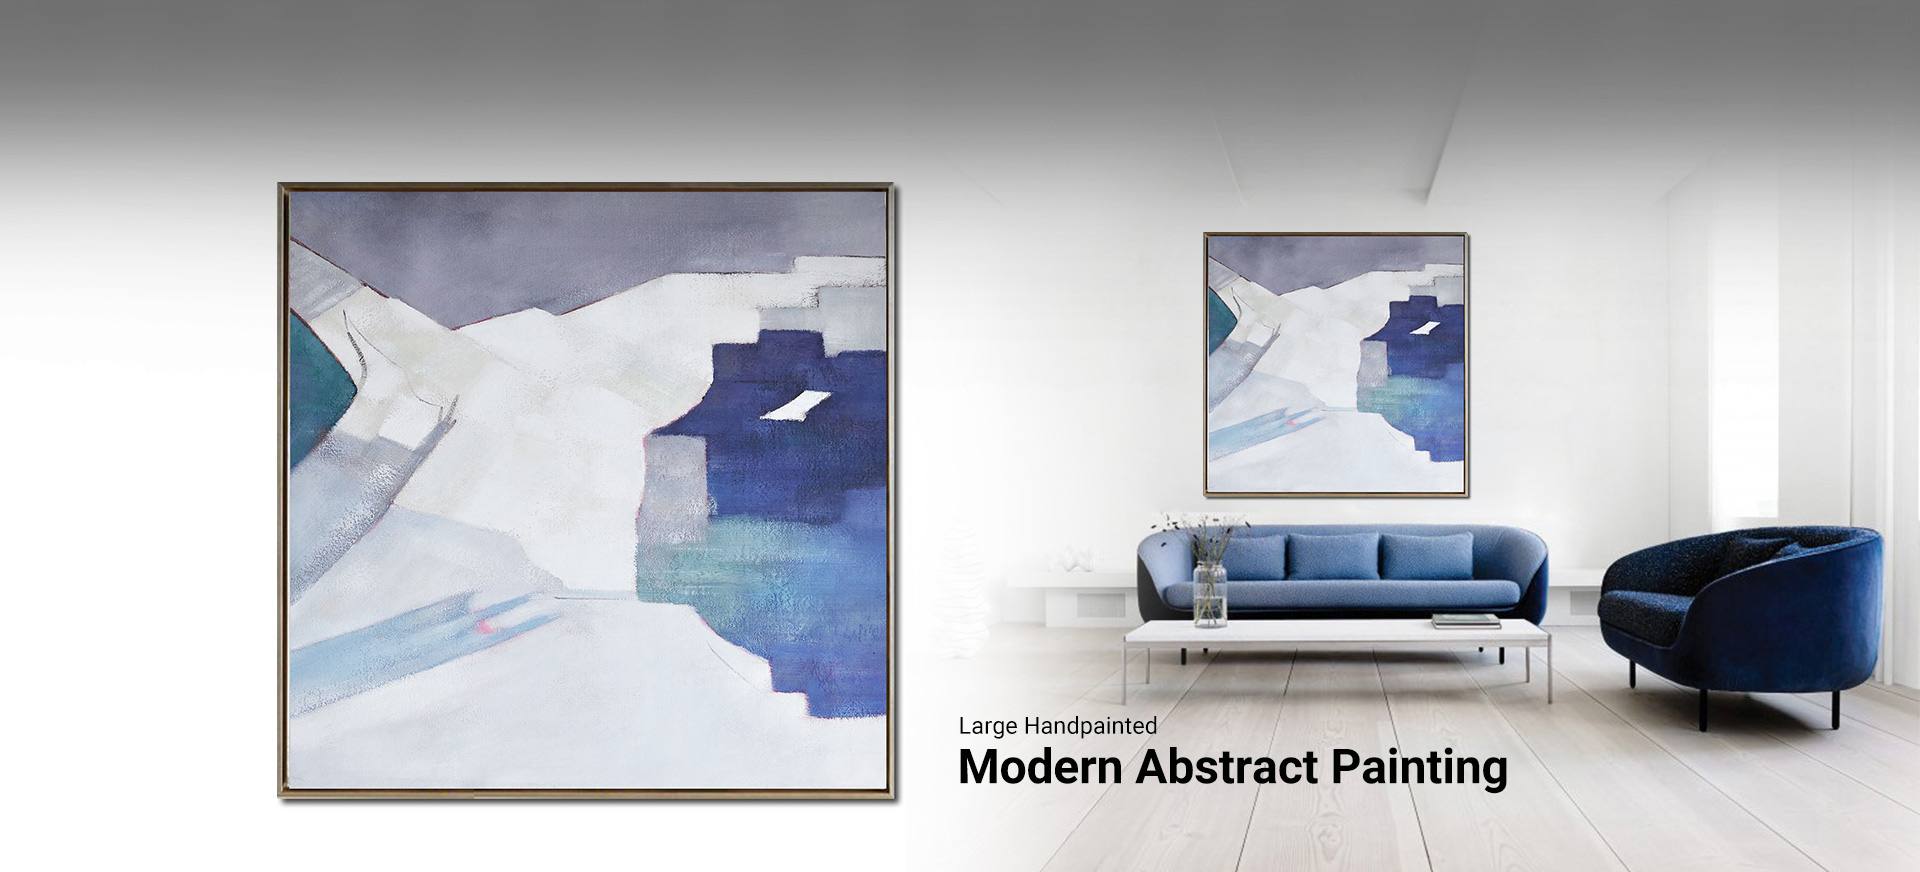 large hand painted modern abstract painting